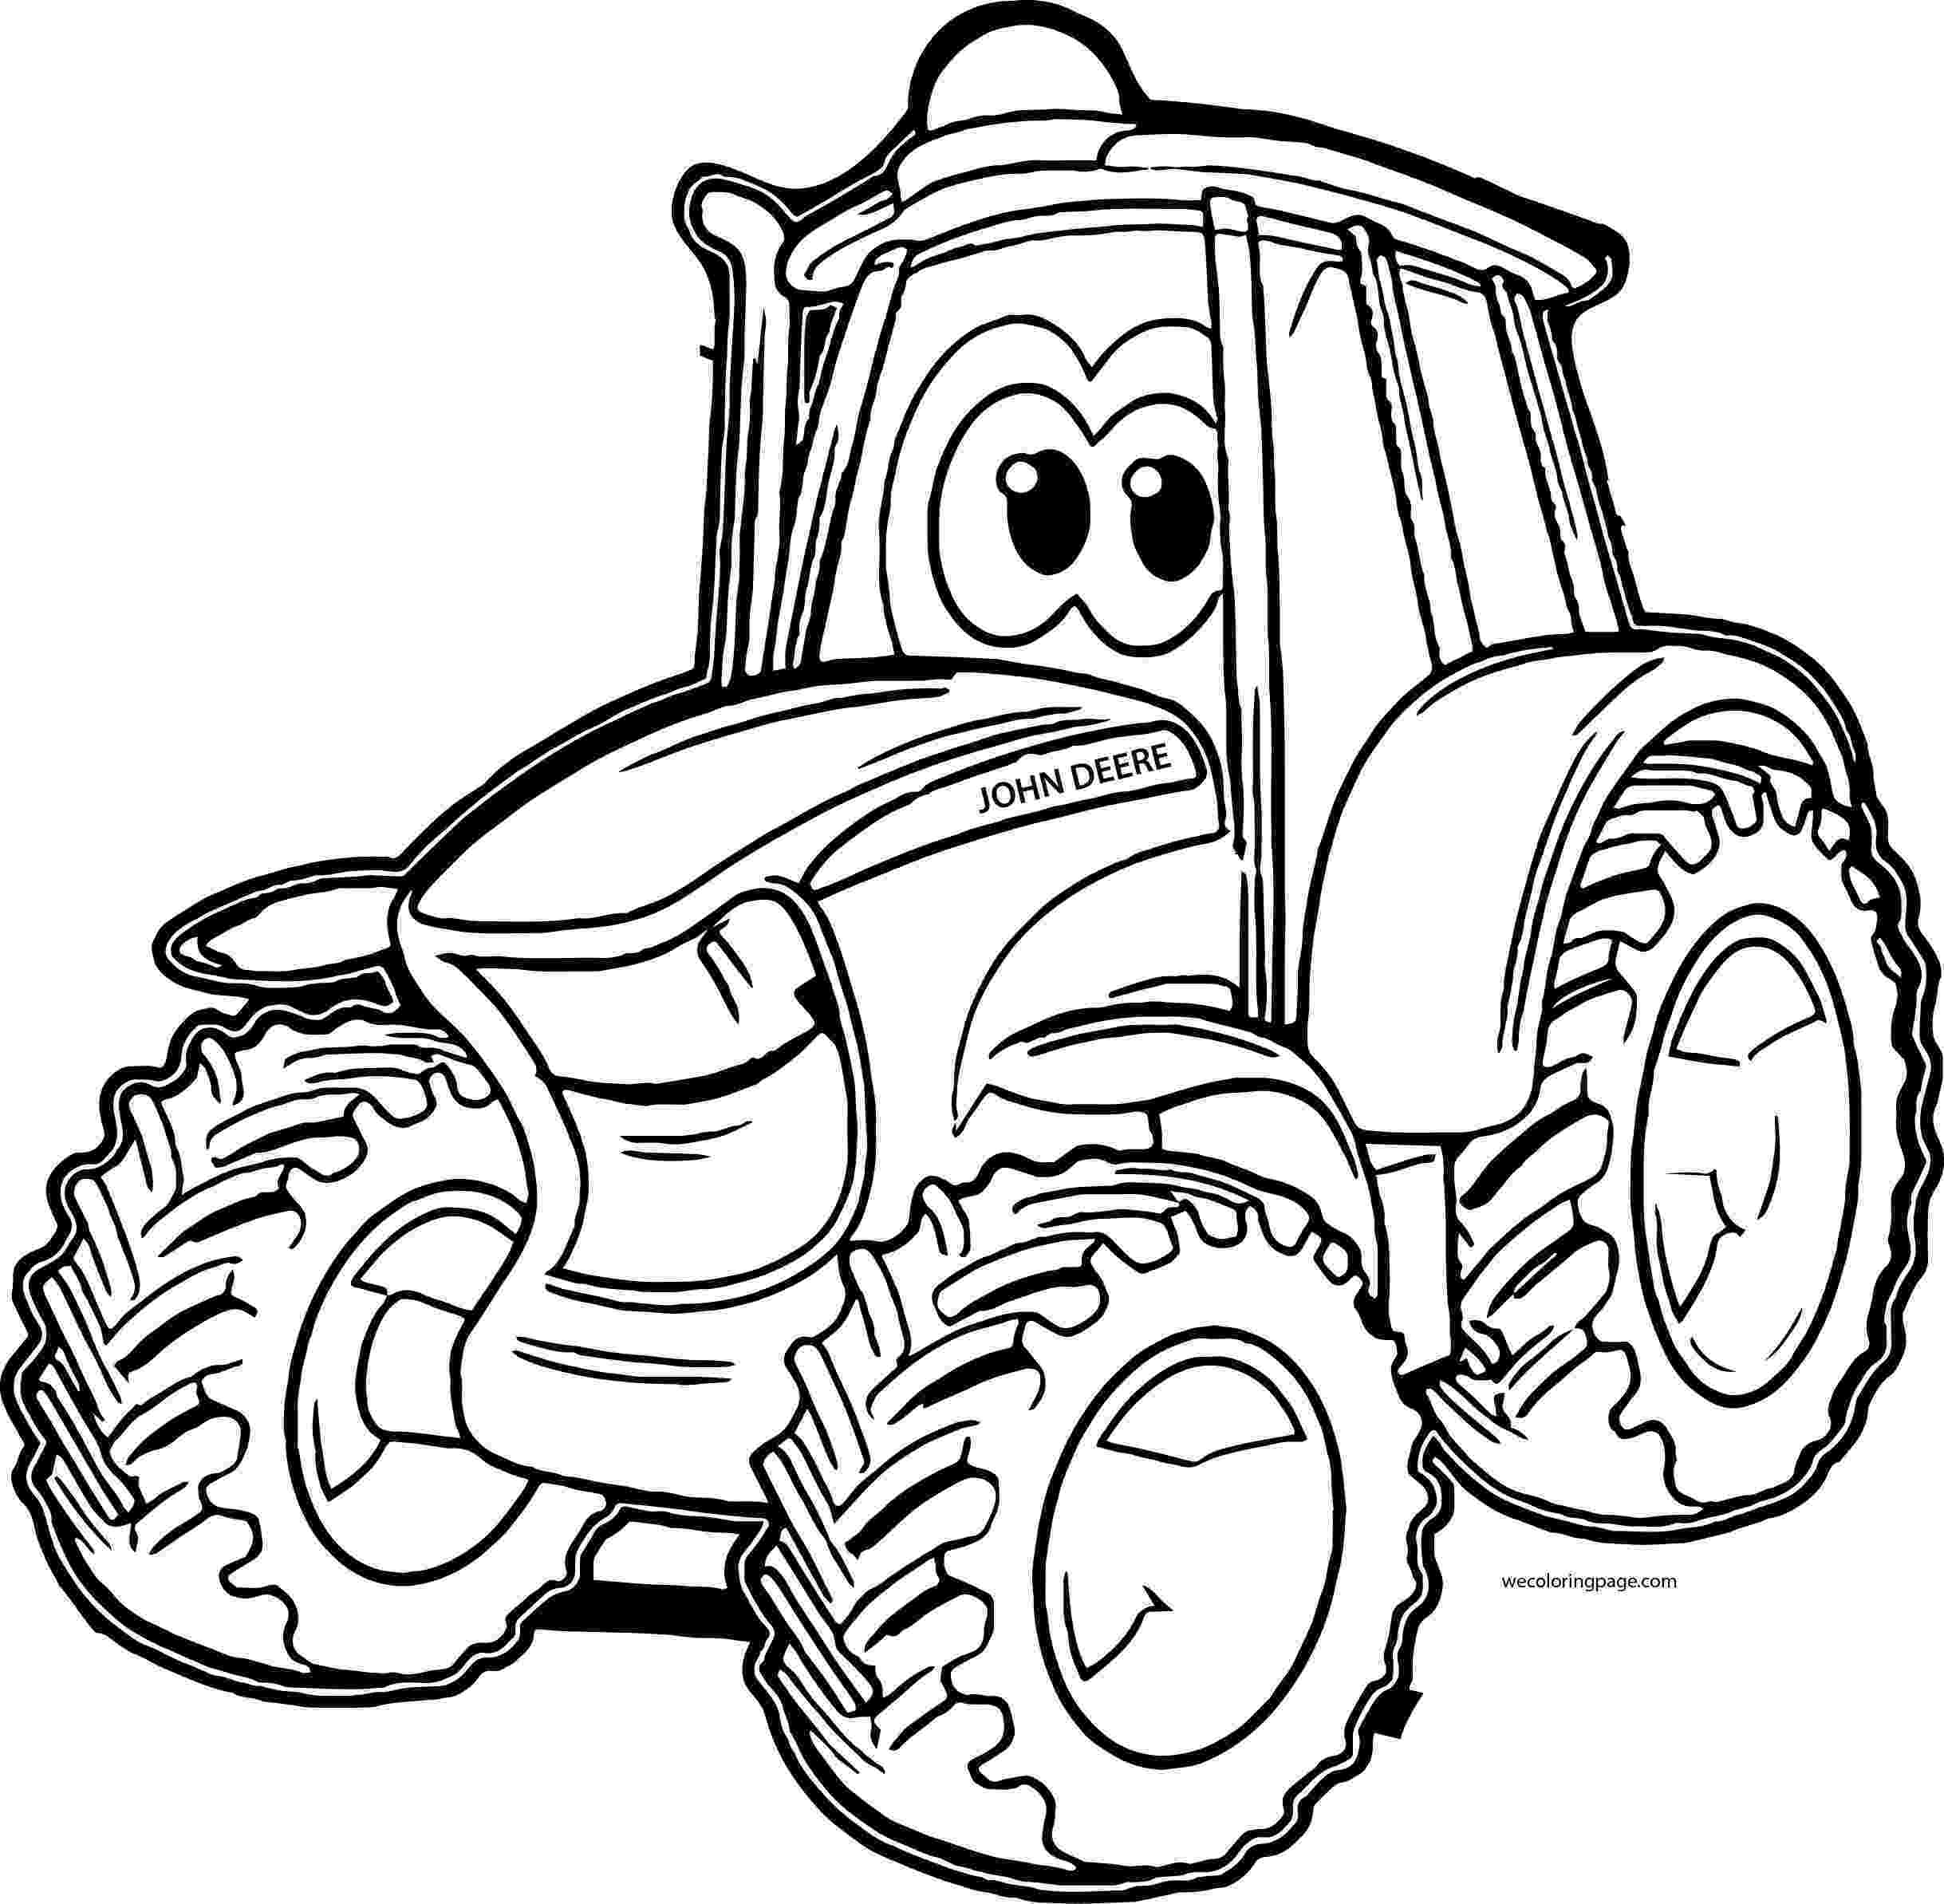 john deere combine coloring pages john deere tractor coloring pages to print at getcolorings pages deere combine john coloring